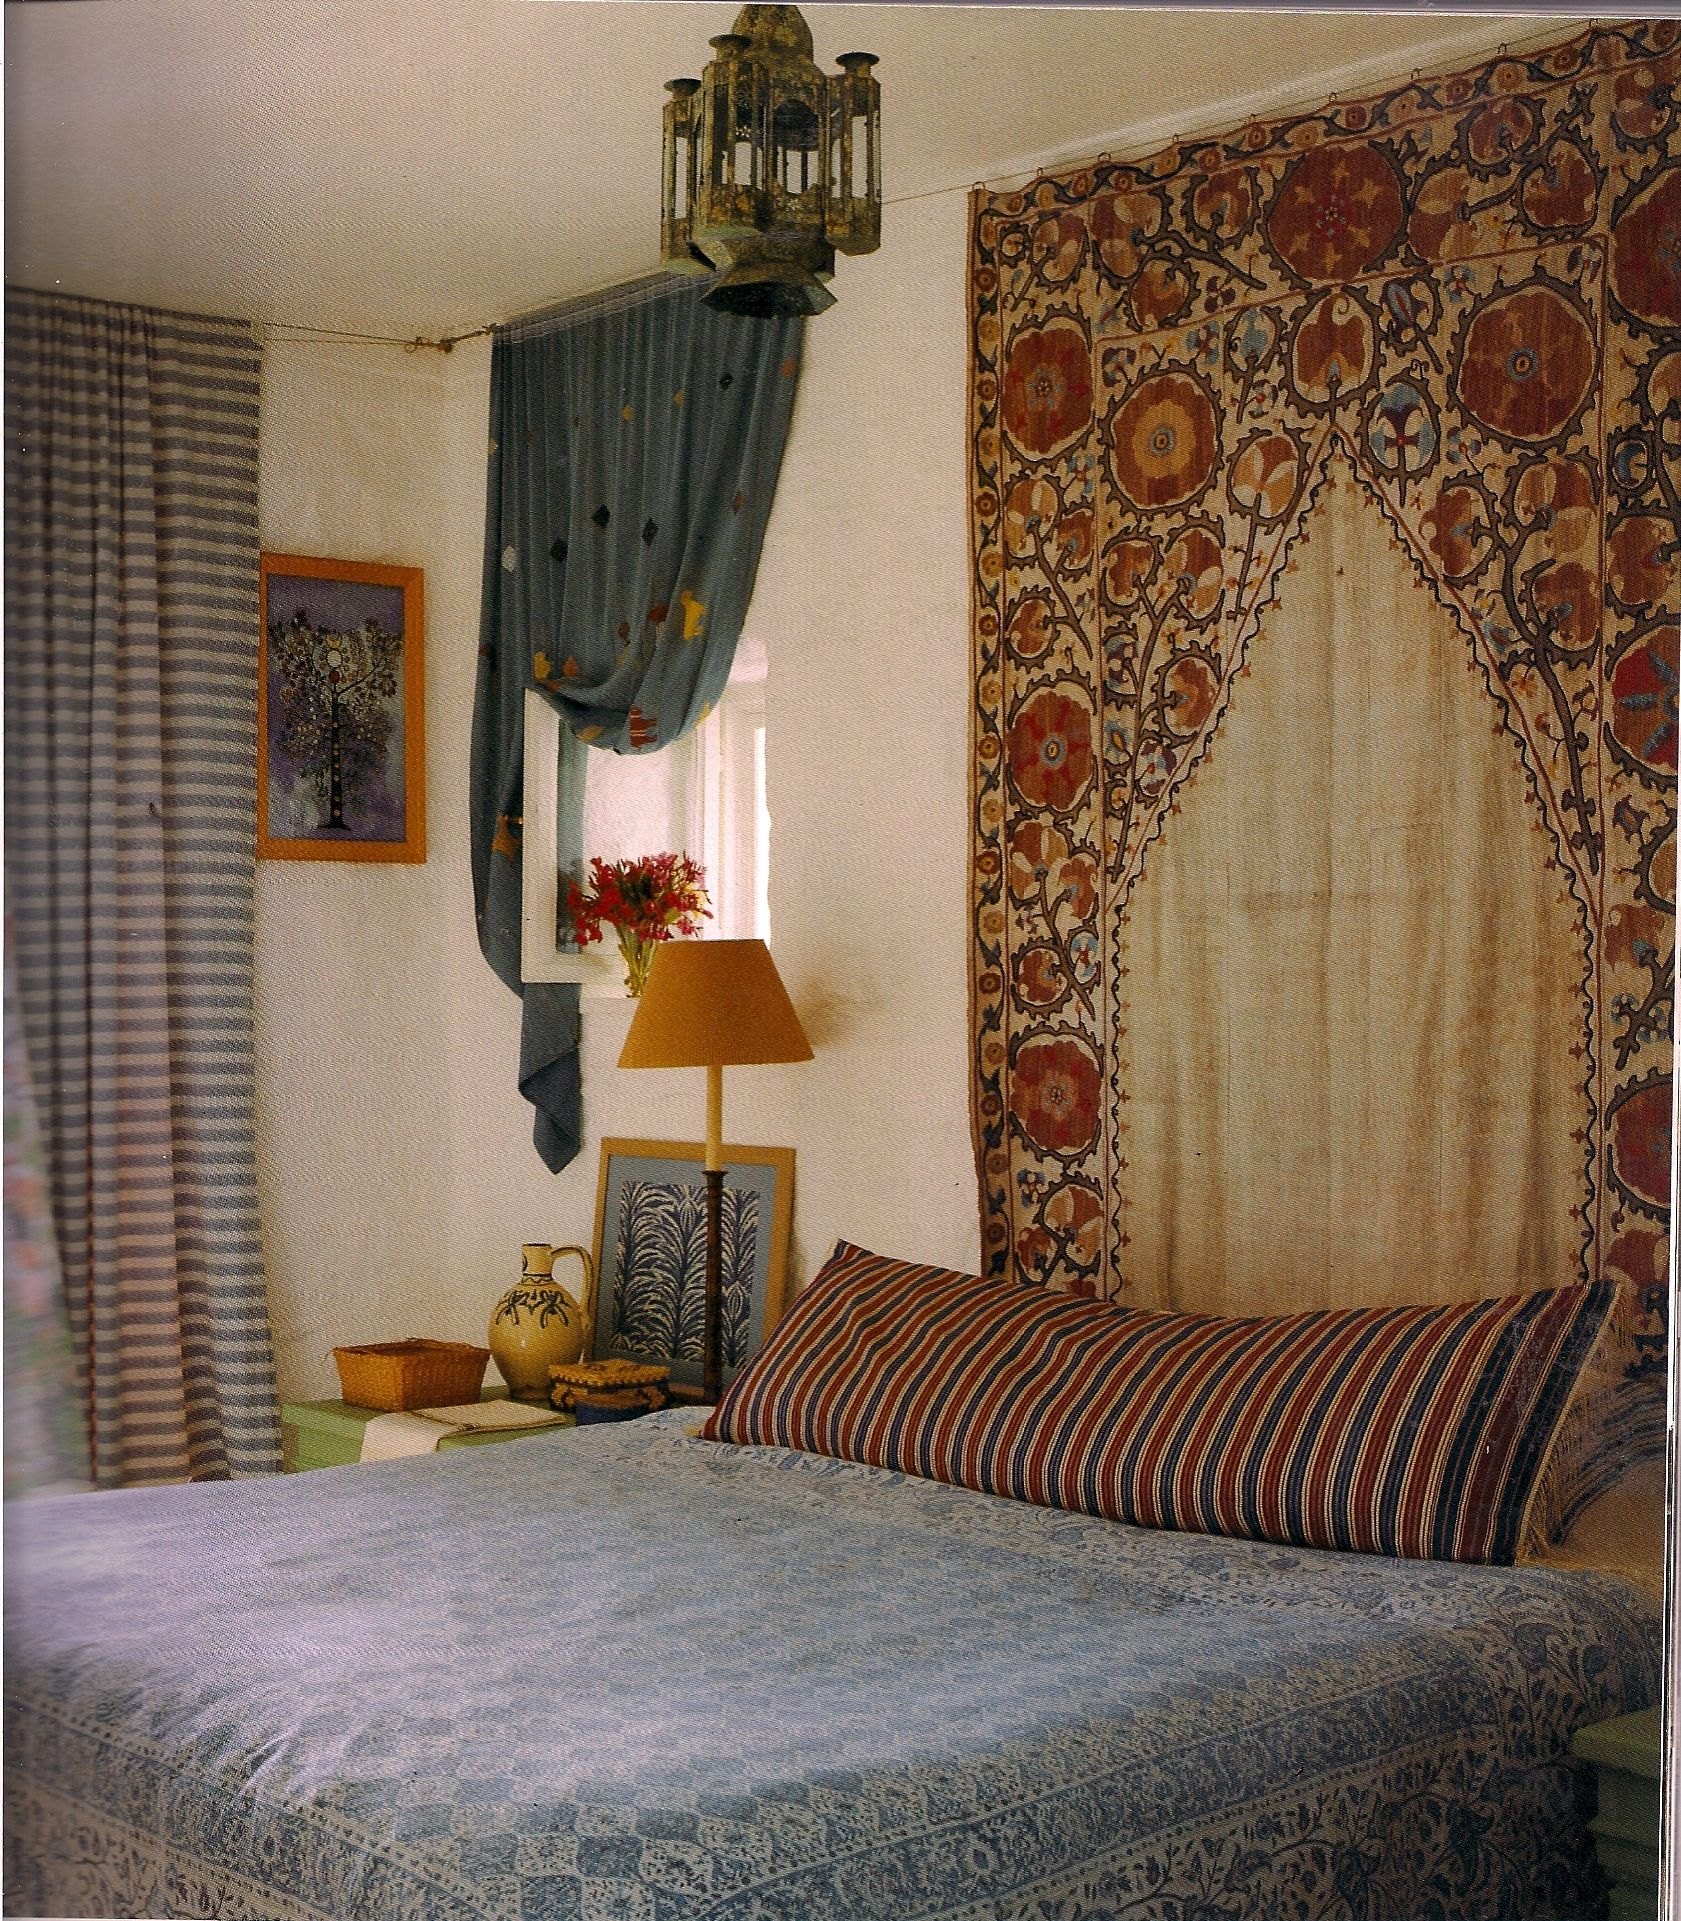 My favorite bedroom in the world Turkish Bedroom Mixing Patterns Blue and White Ethnic